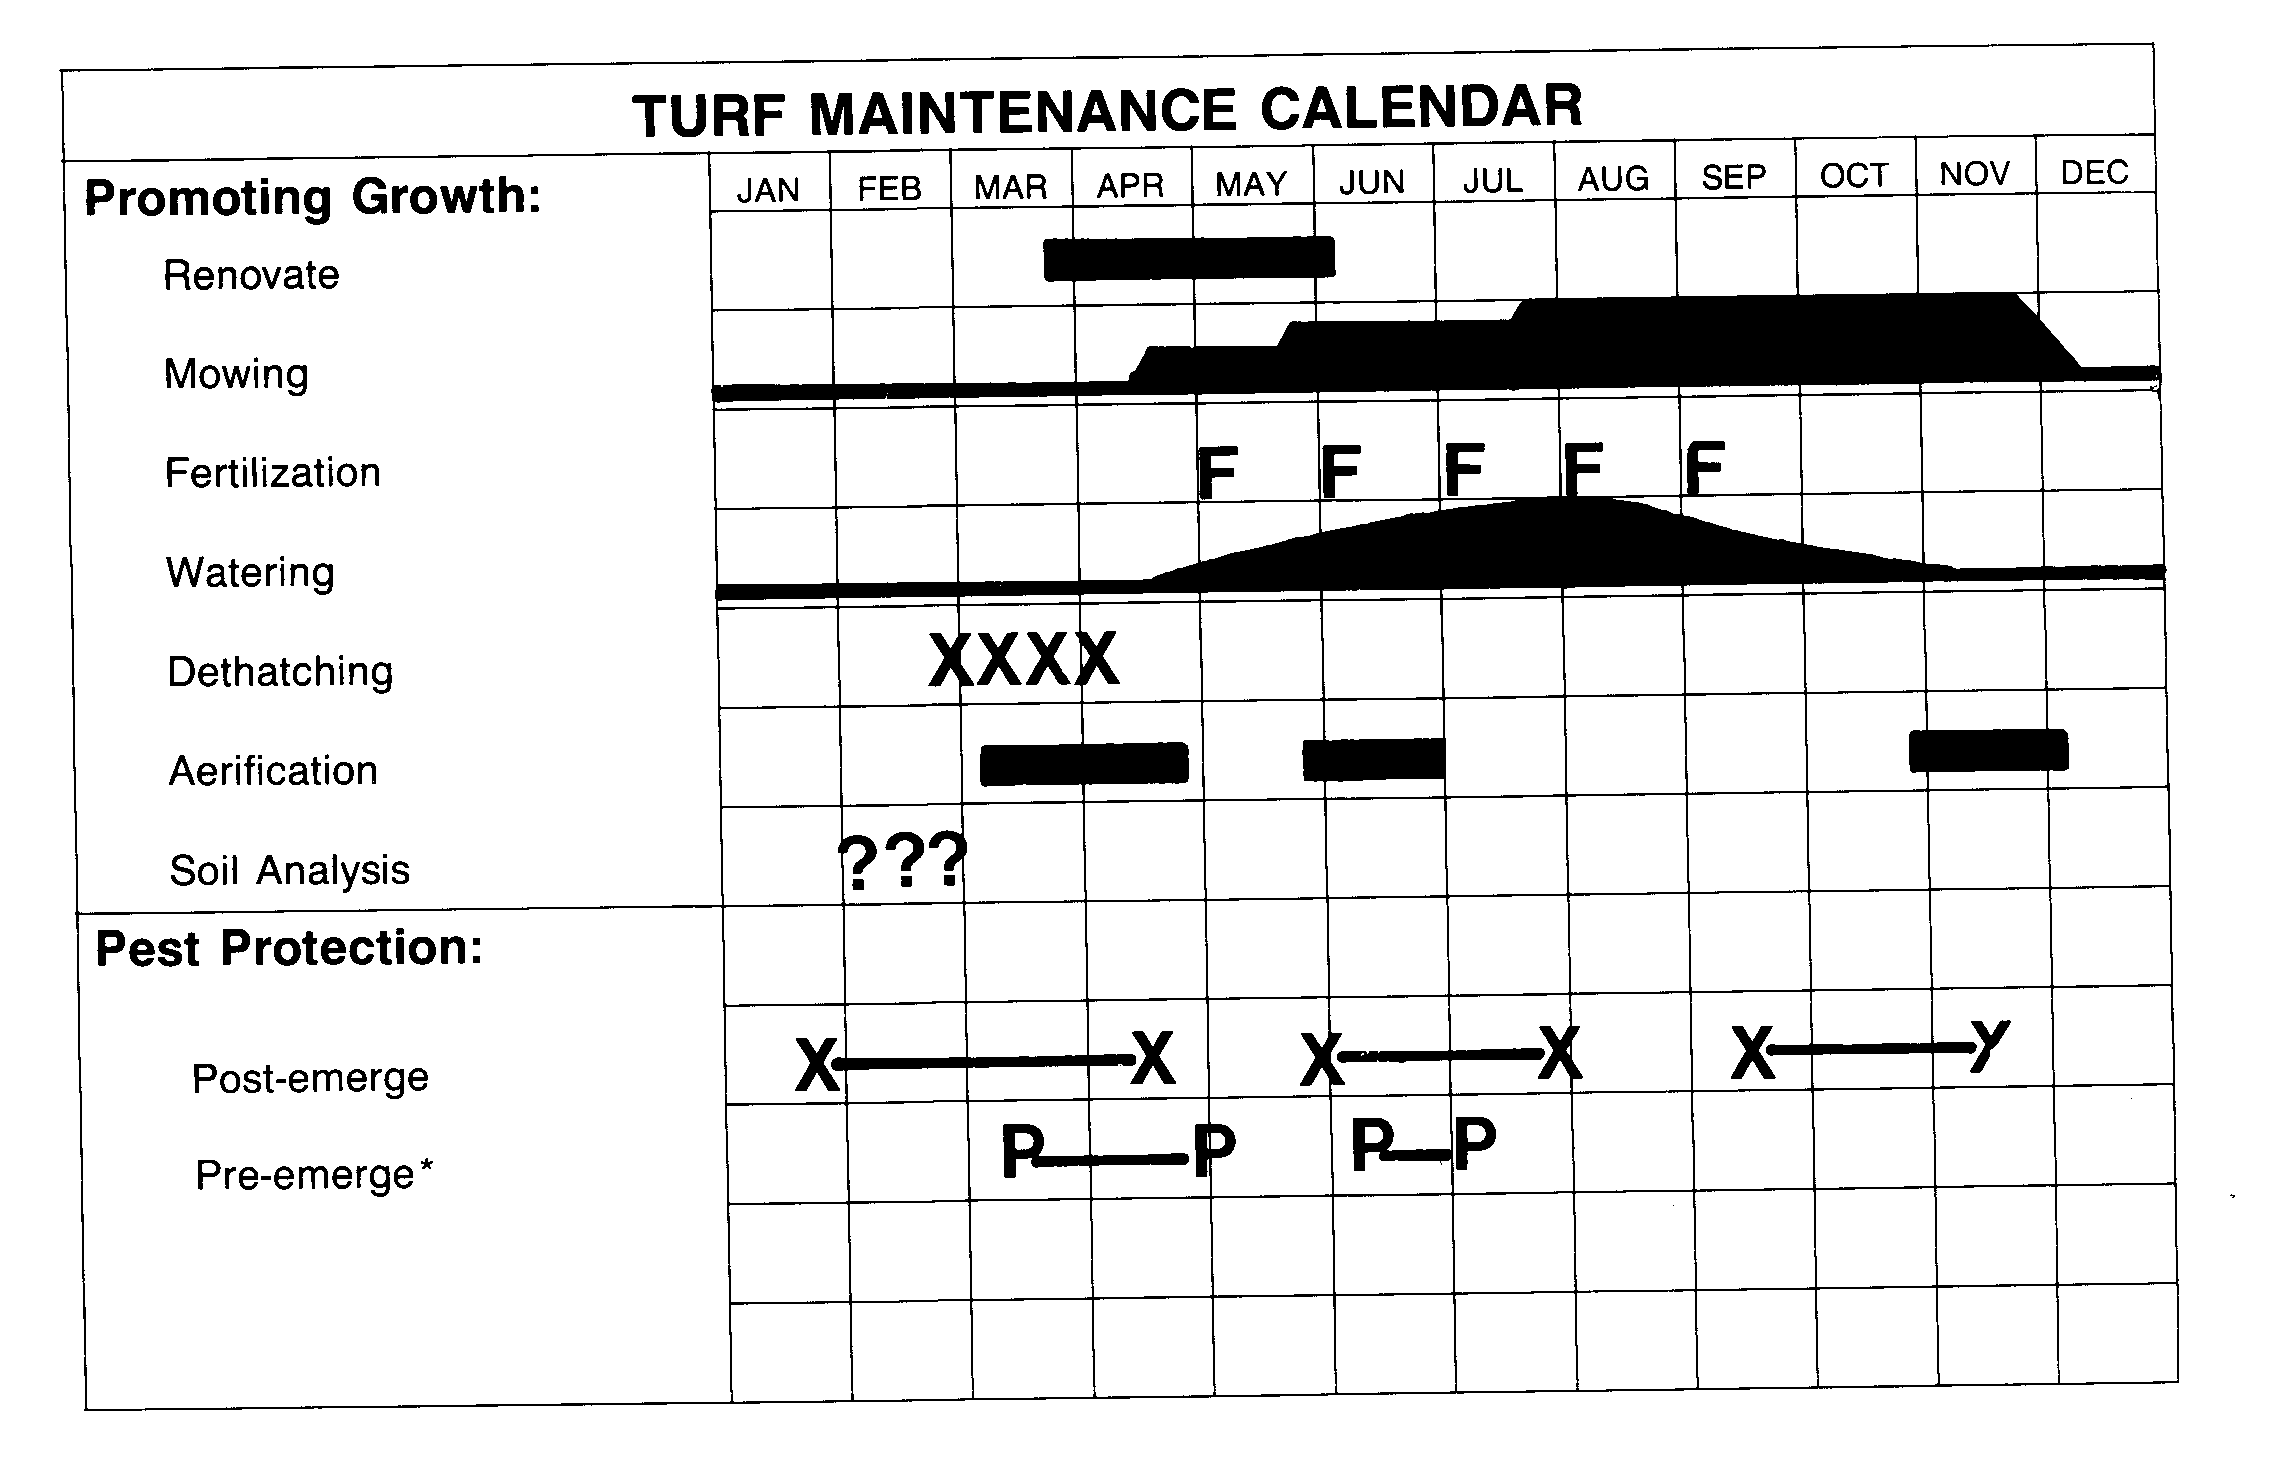 Example of a turf maintenance calendar.